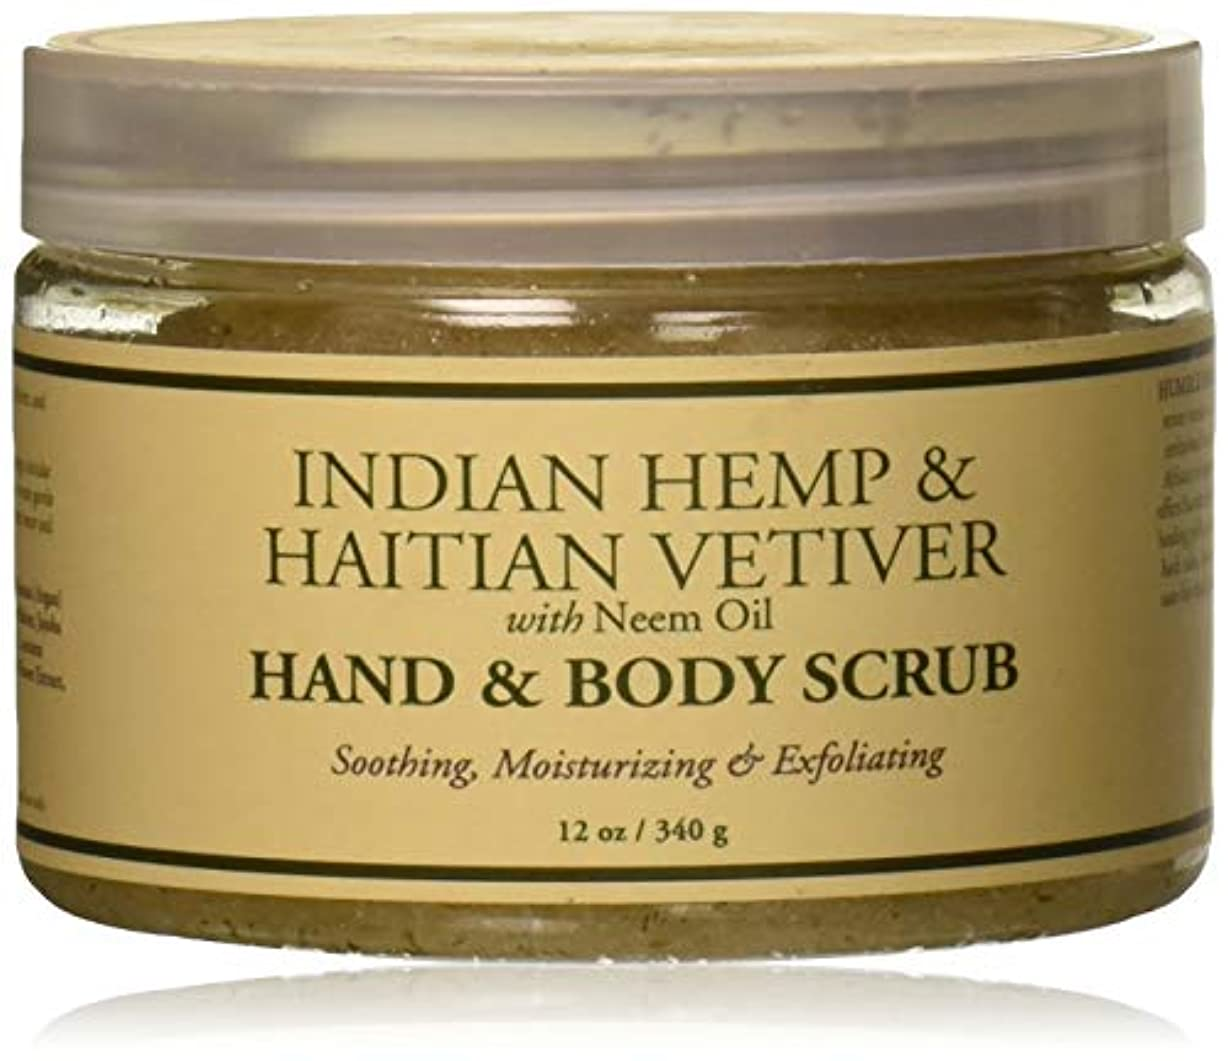 被害者マントルそれに応じてHand and Body Scrub - Indian Hemp and Haitian Vetiver - 12 oz by Nubian Heritage